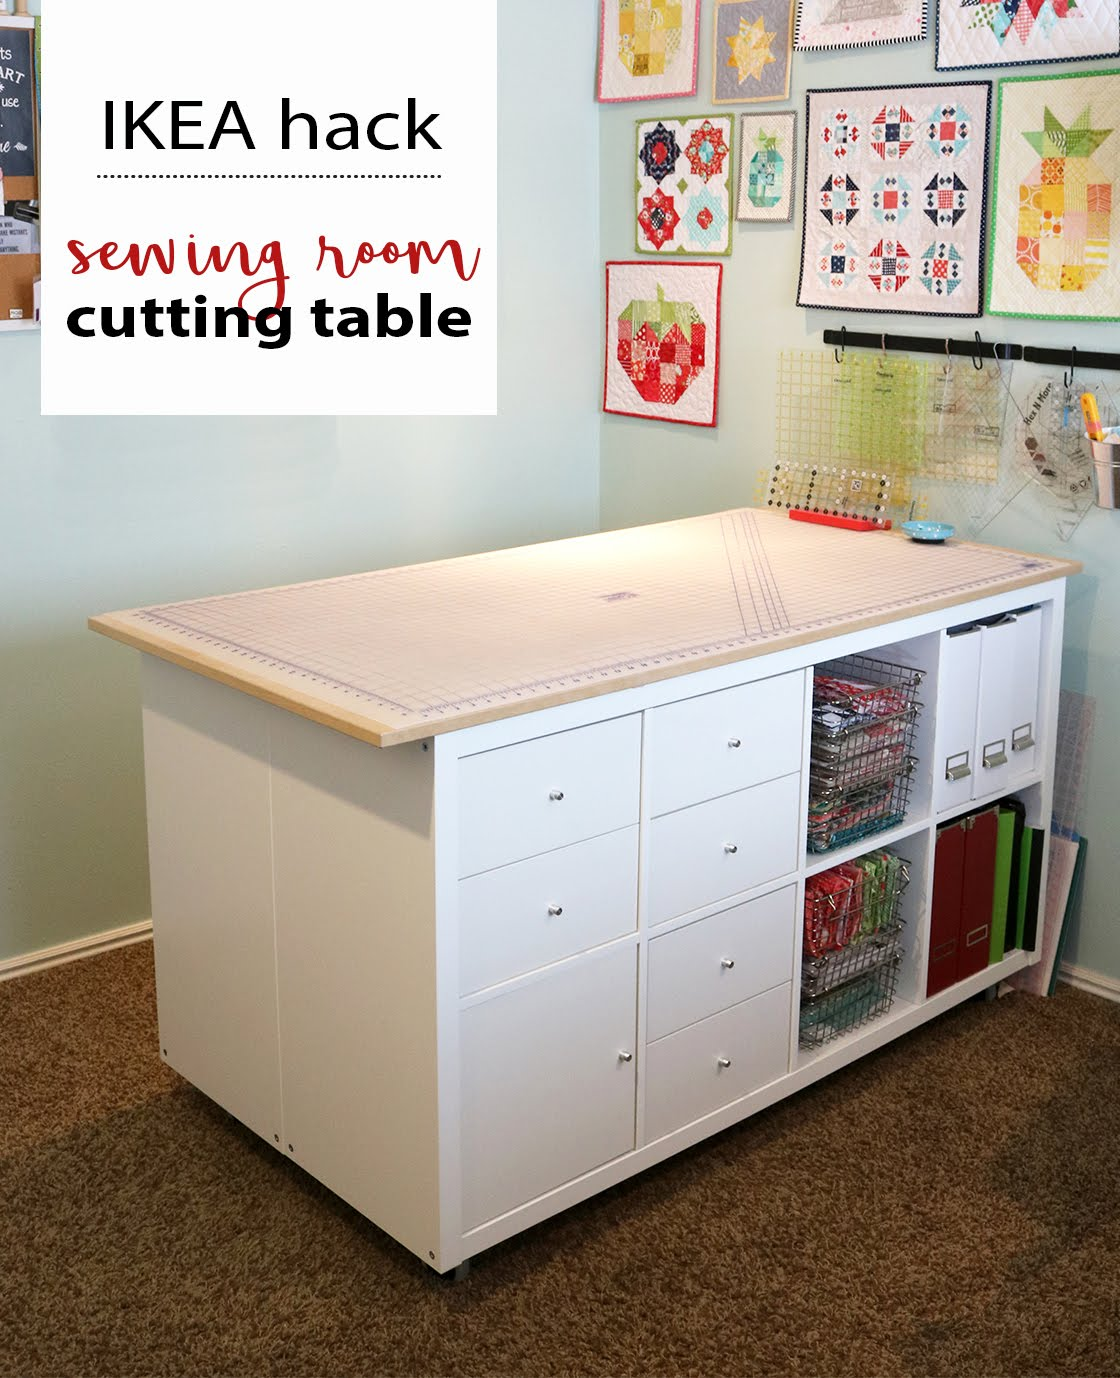 Diy Craft Room Table: A Bright Corner: DIY Sewing Room Cutting Table IKEA Hack